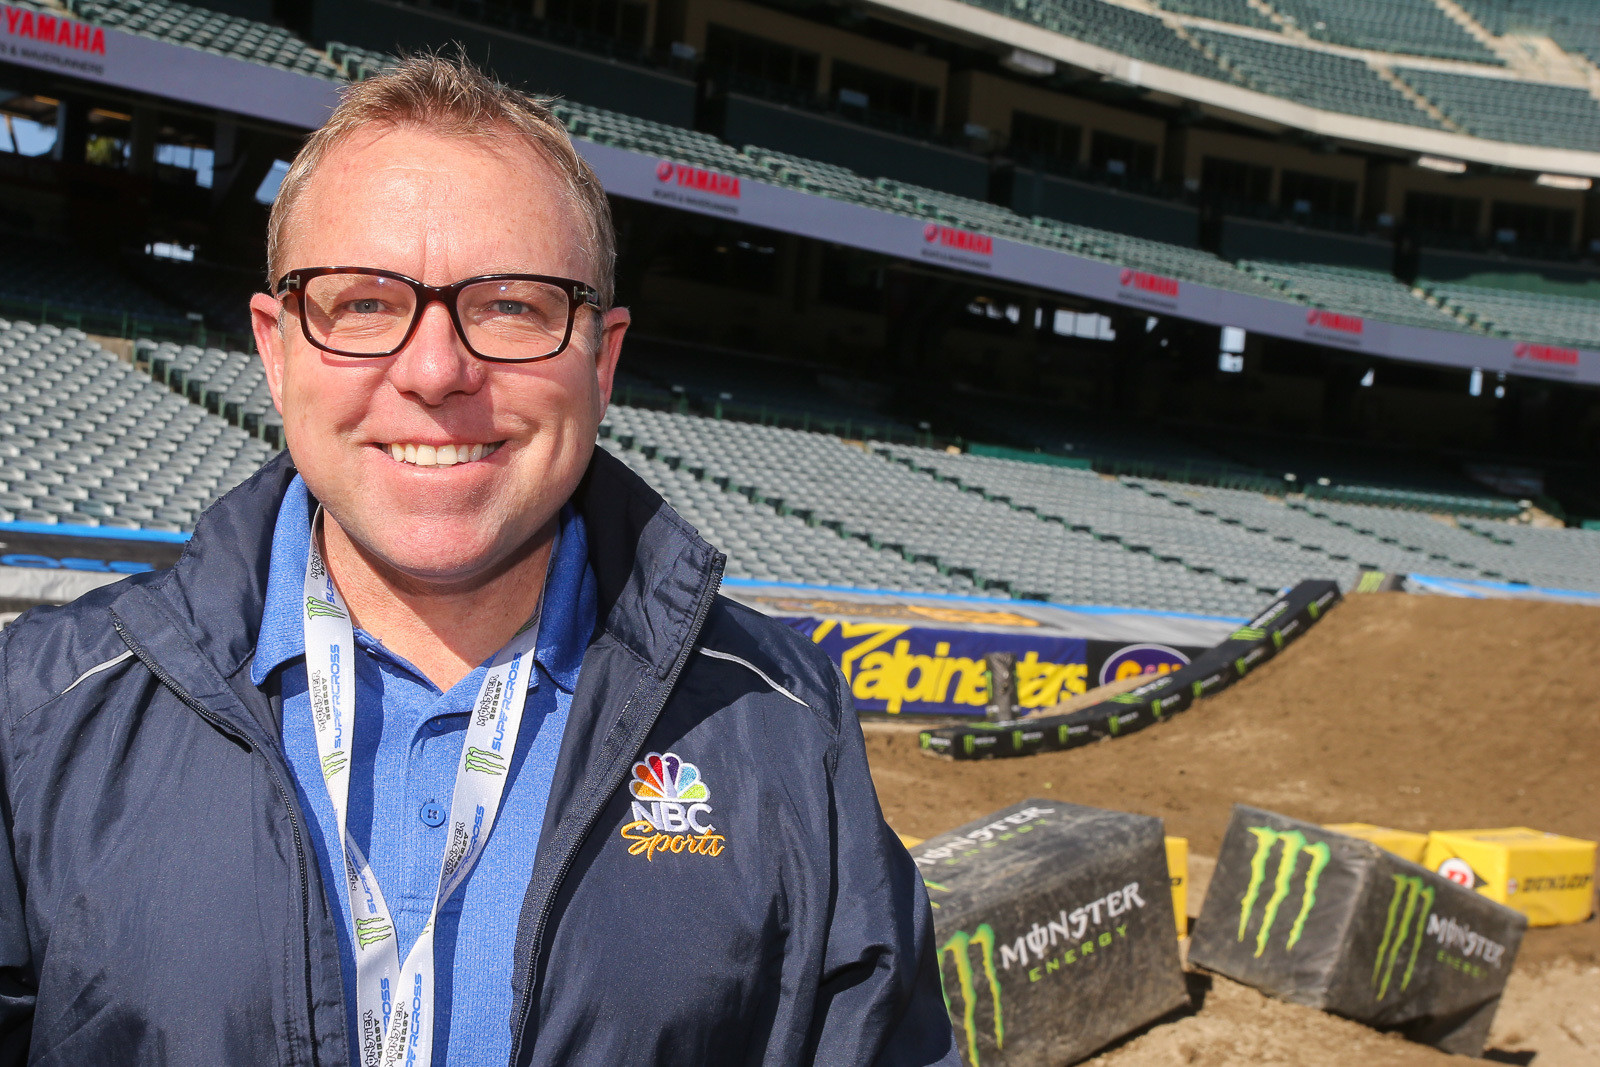 This will be the last Supercross for Leigh Diffy. Next week he'll head to Daytona for the Rolex 24. Then he'll have a mix of Indycar, sports cars, Rugby, track and field, and later in the year the Olympics.